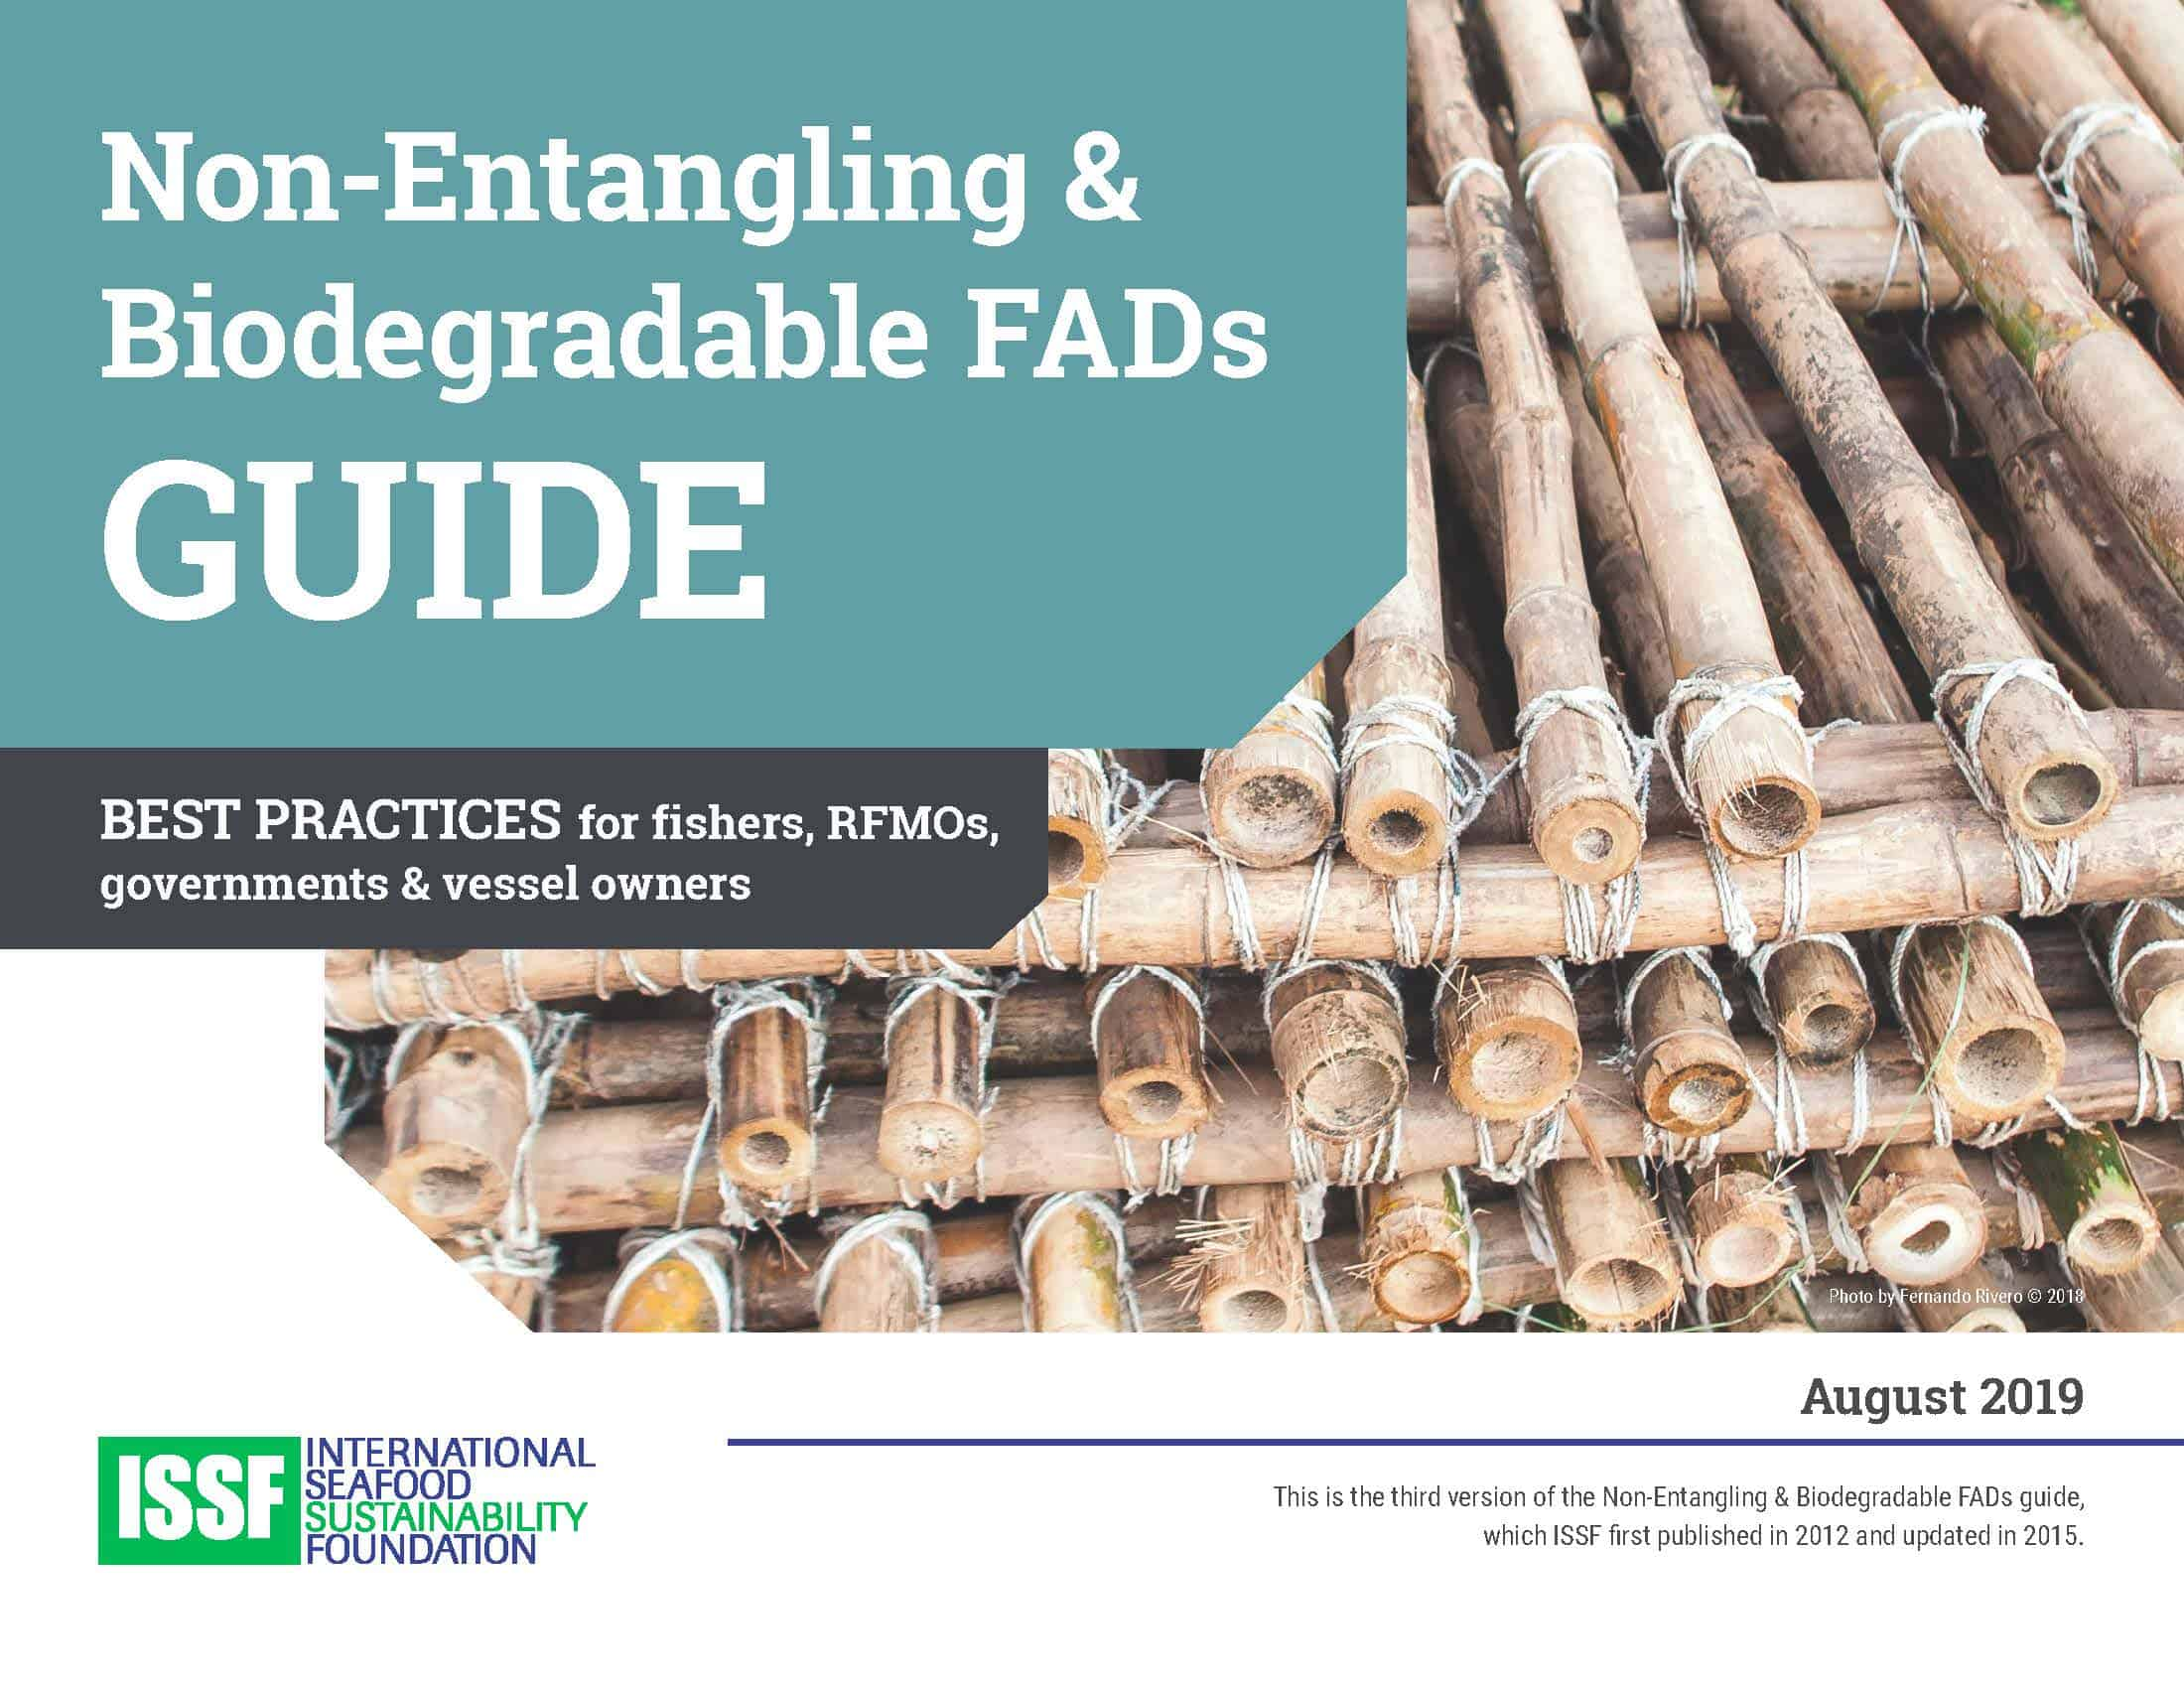 Non-Entangling and Biodegradable FADs Guide